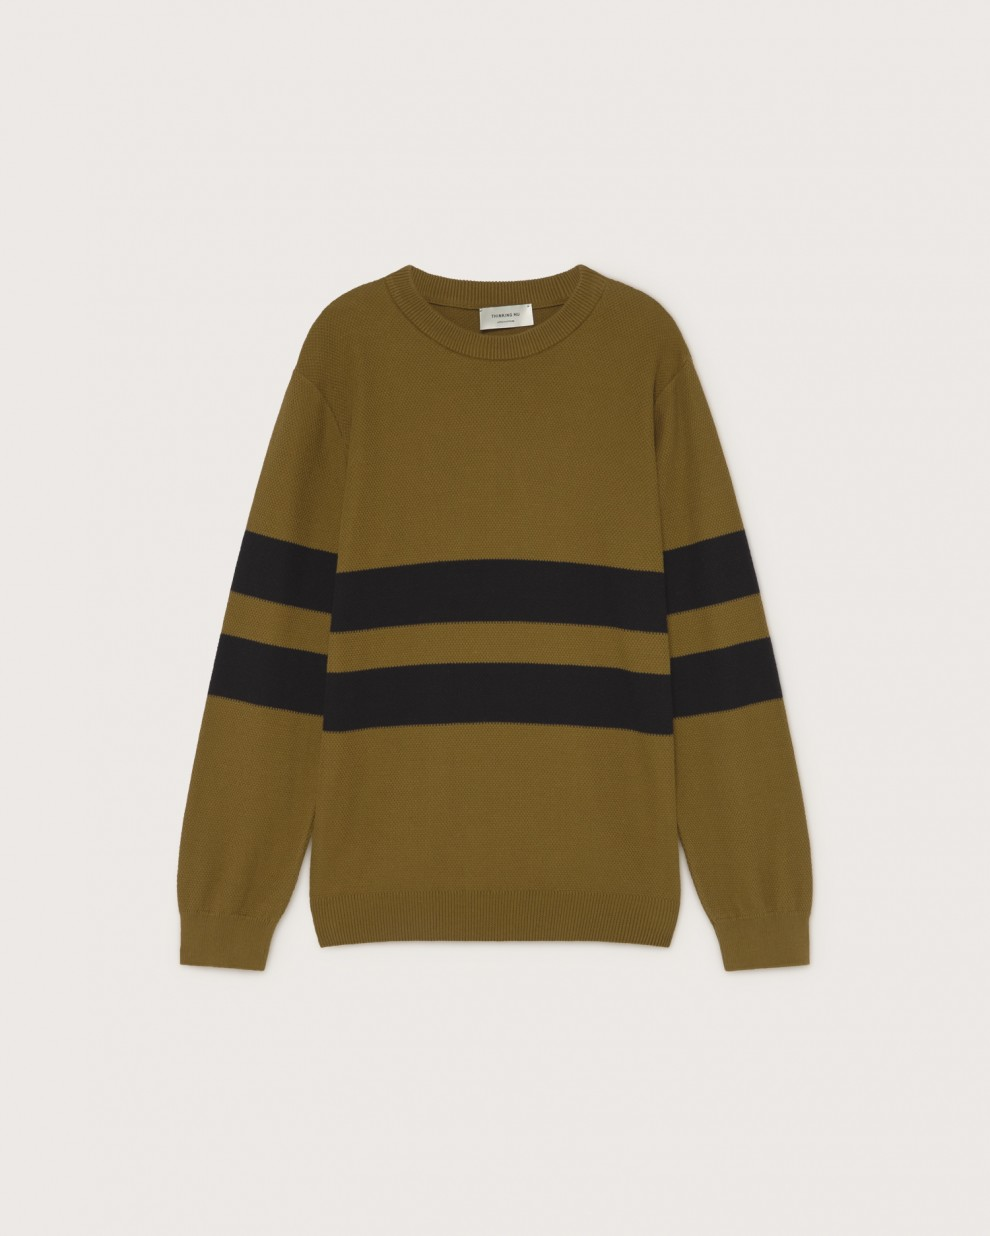 Olive green Moa knitted sweater